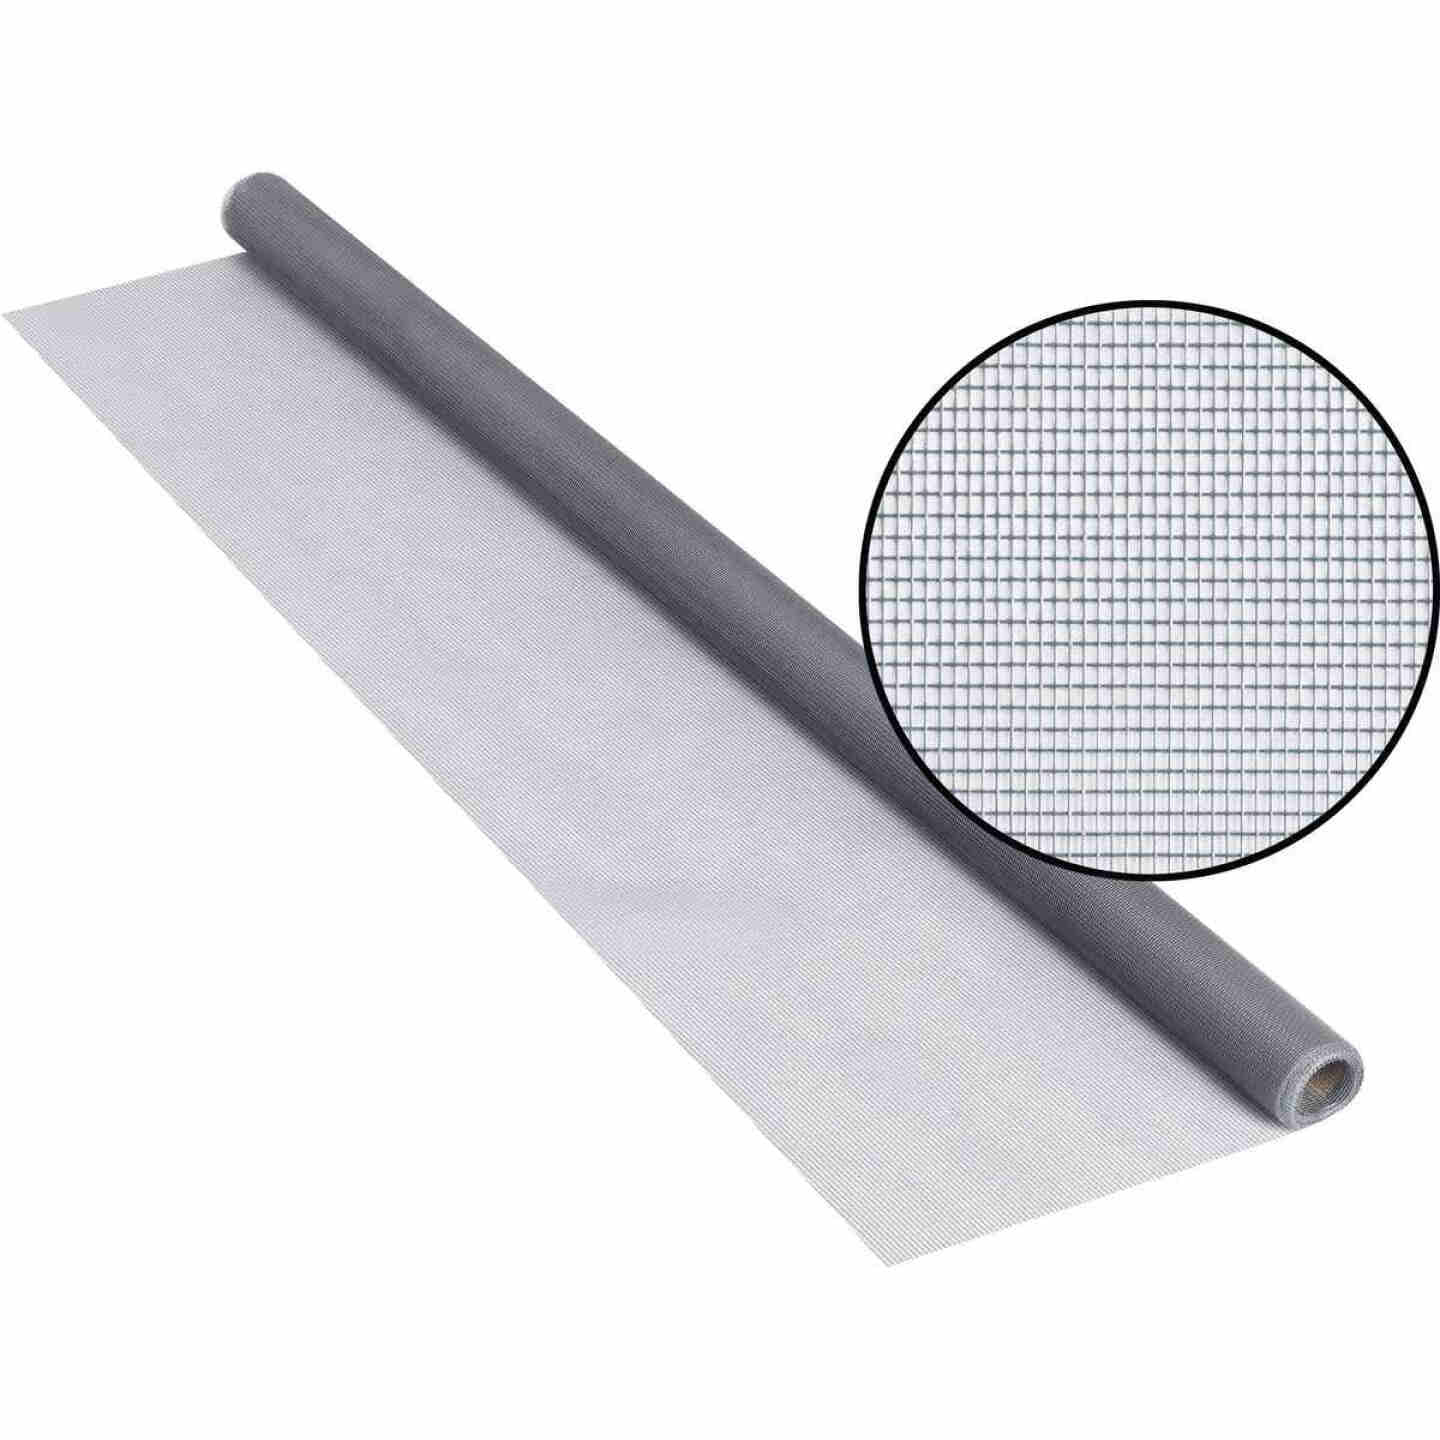 Phifer 30 In. x 84 In. Gray Fiberglass Screen Cloth Ready Rolls Image 1